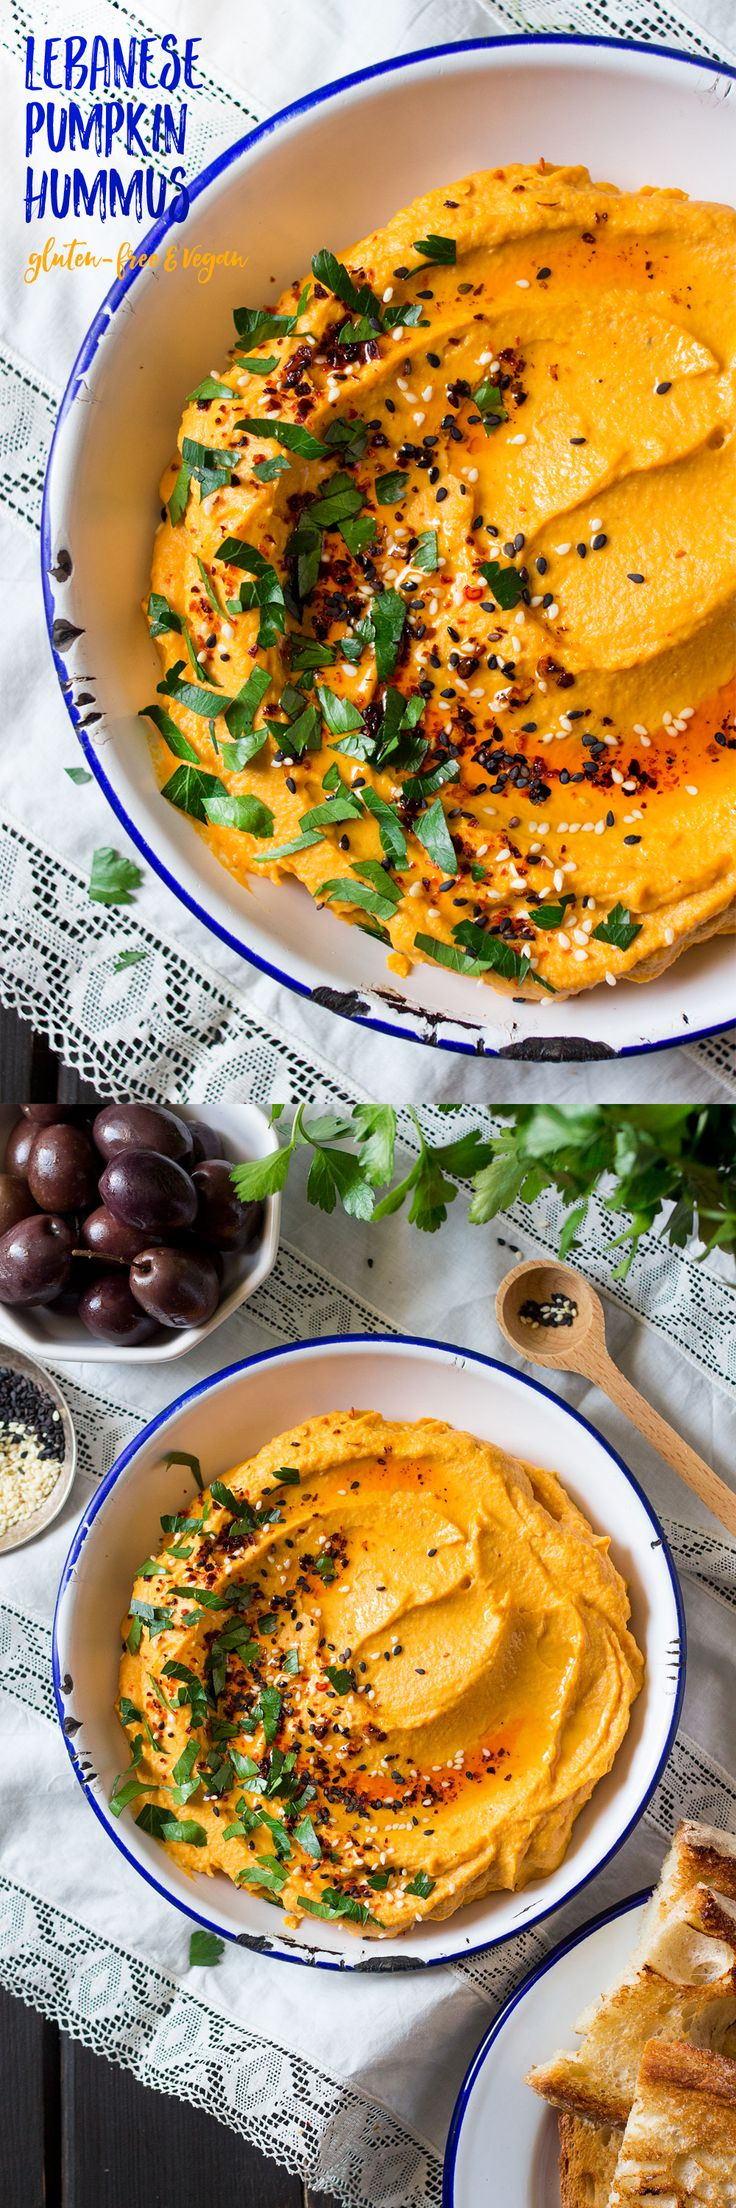 This #lebanese #pumpkin #hummus requires only 6 simple ingredients. It's so smooth and creamy that it's hard to resist and way easier to make than classic hummus too! #recipe #recipes #appetizer #snack #vegan #glutenfree